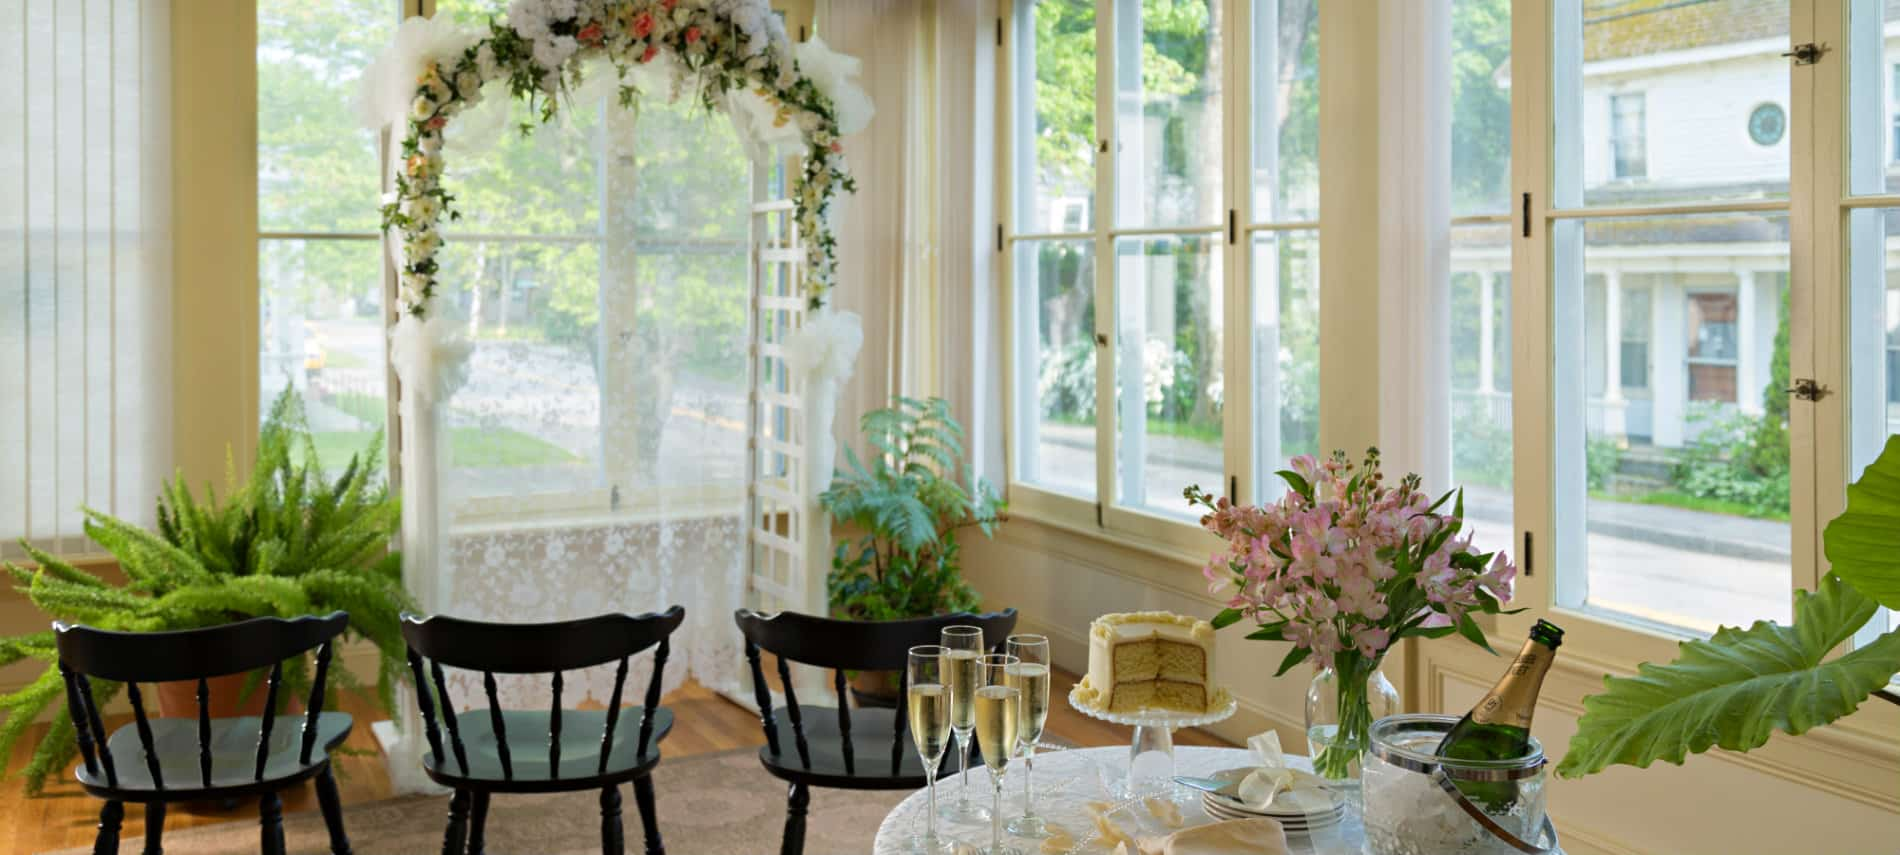 Lovely weddingin vignette with an arch decoratd in flowers and a table set with cake and champagne.